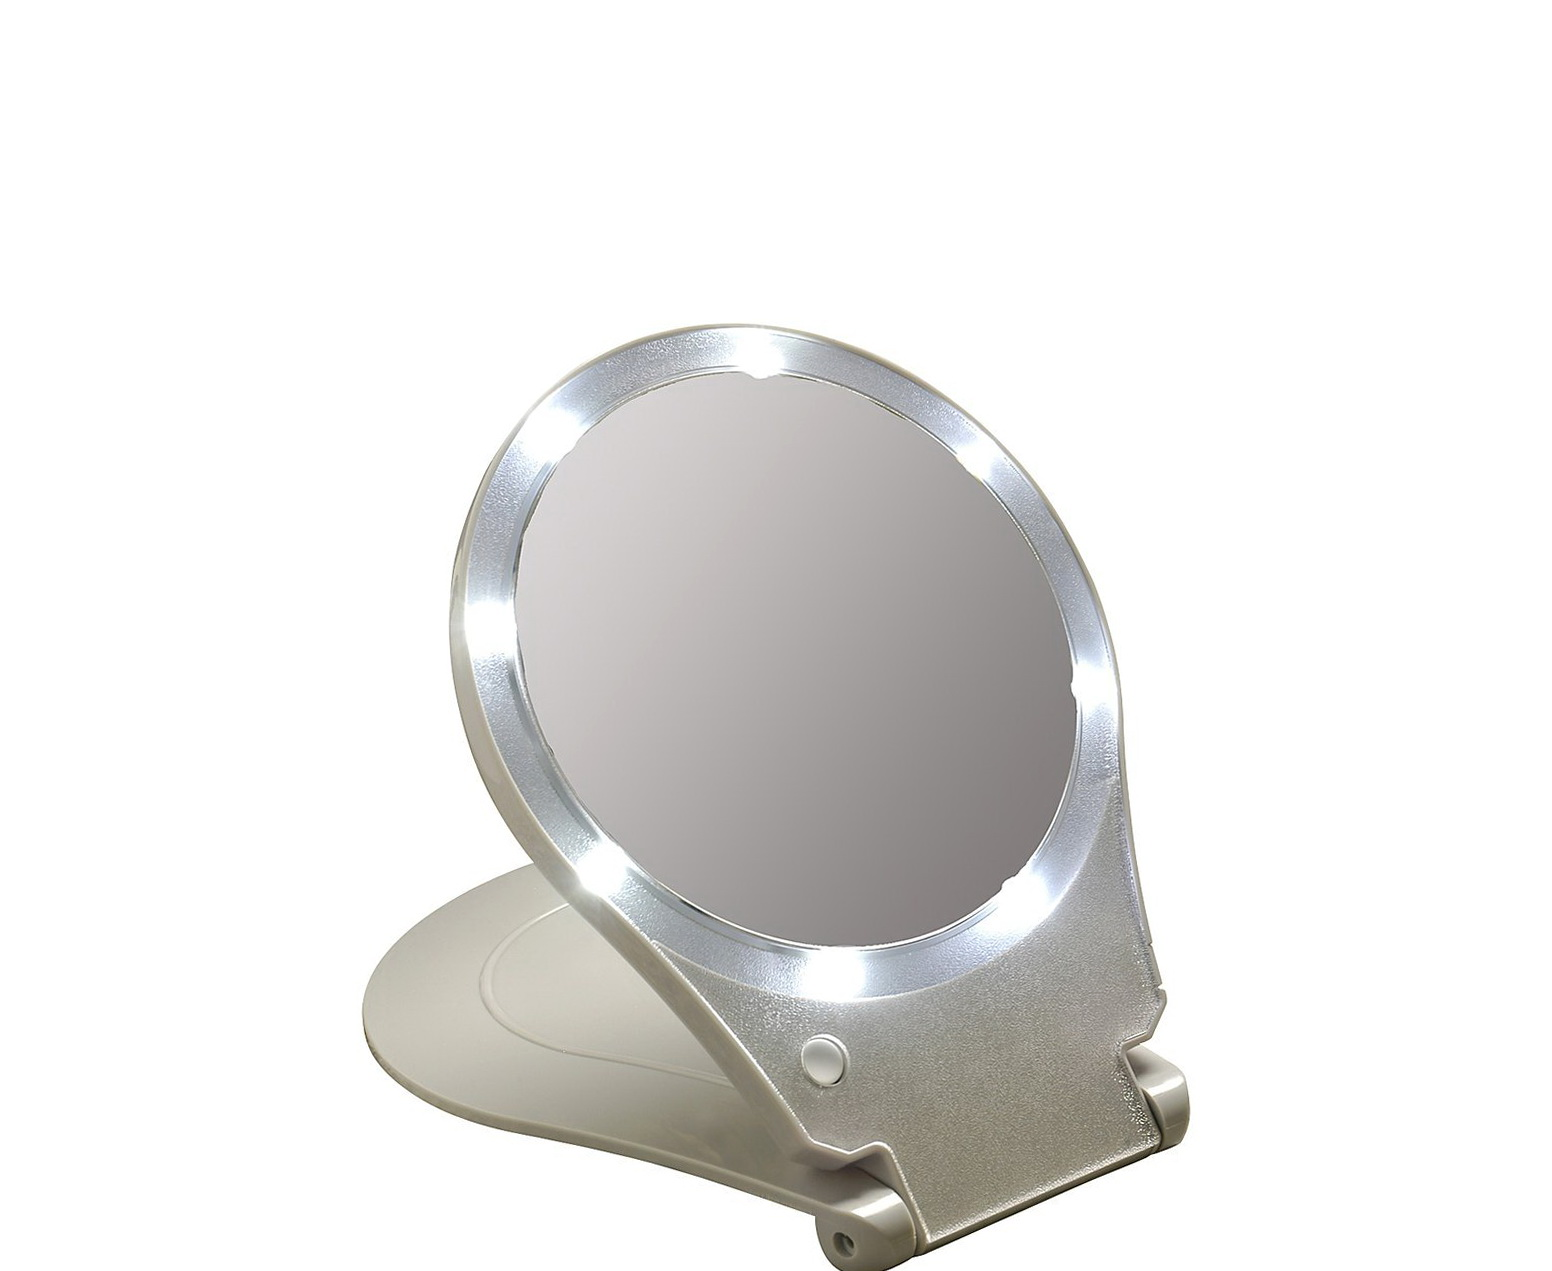 Conair Illumina Lighted Makeup Mirror | Conair Lighted Makeup Mirror | Conair Be6sw